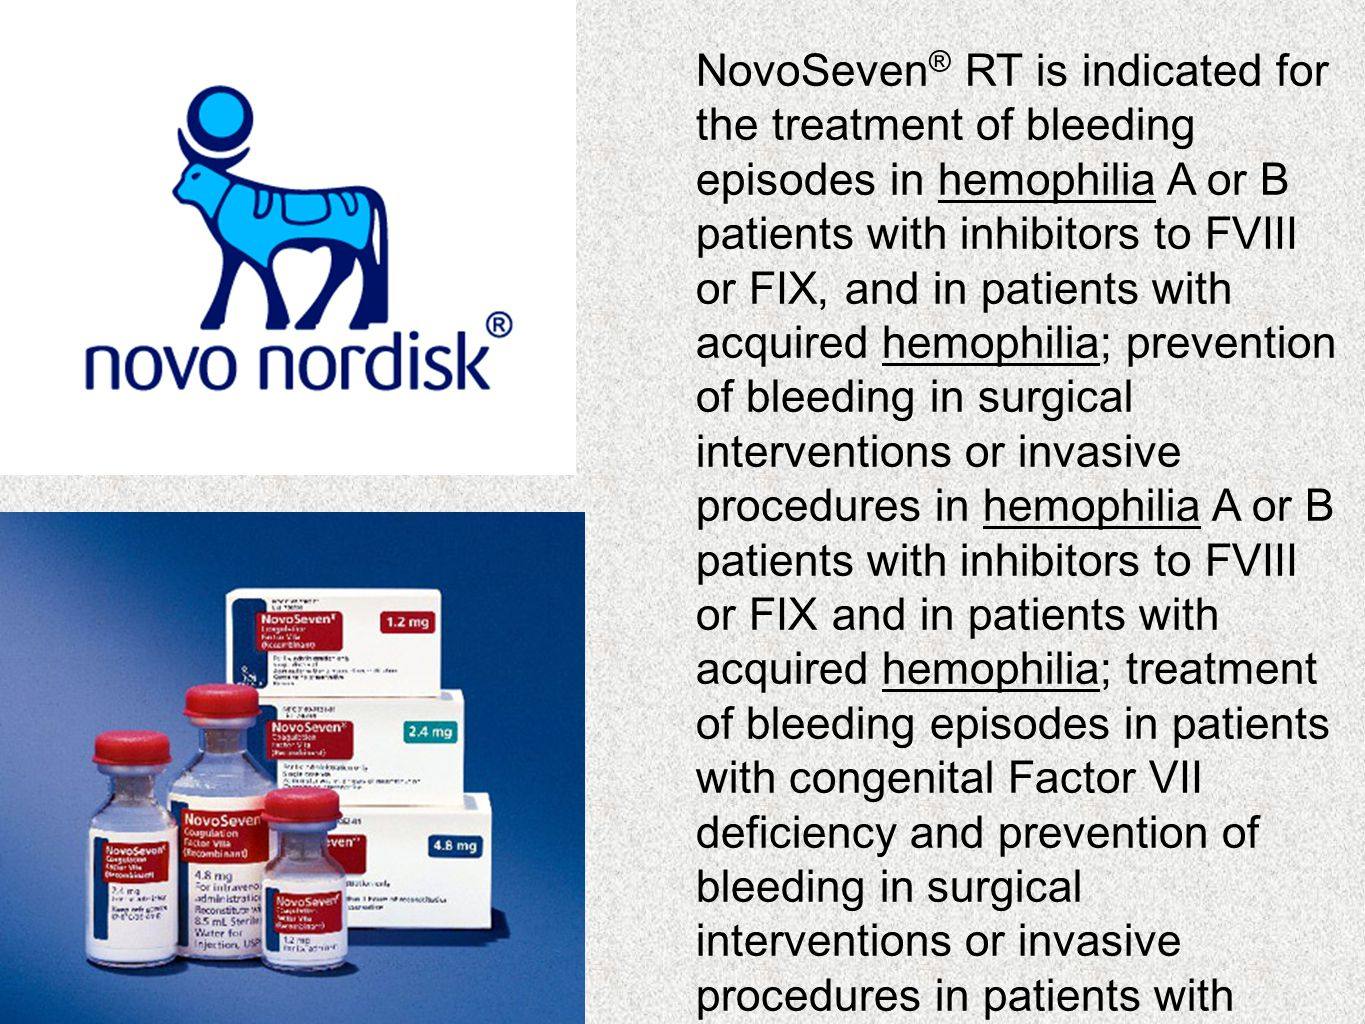 NovoSeven® RT is indicated for the treatment of bleeding episodes in hemophilia A or B patients with inhibitors to FVIII or FIX, and in patients with acquired hemophilia; prevention of bleeding in surgical interventions or invasive procedures in hemophilia A or B patients with inhibitors to FVIII or FIX and in patients with acquired hemophilia; treatment of bleeding episodes in patients with congenital Factor VII deficiency and prevention of bleeding in surgical interventions or invasive procedures in patients with congenital FVII deficiency.